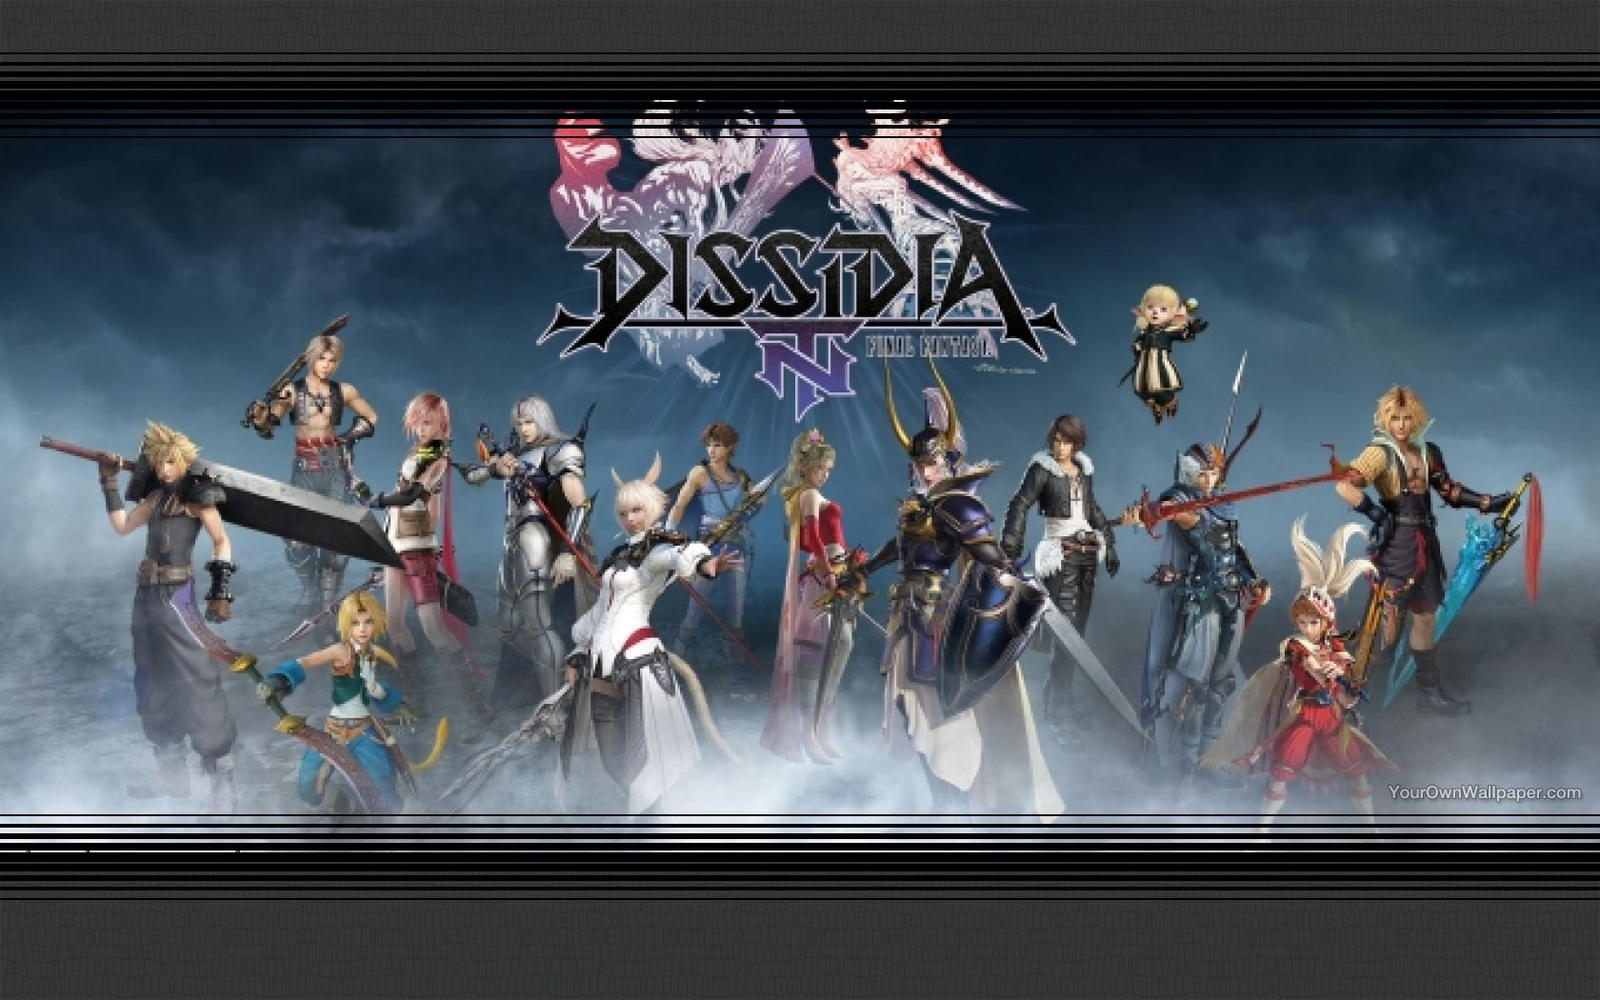 Dissidia Final Fantasy Nt Wallpaper By Catcamellia On Deviantart